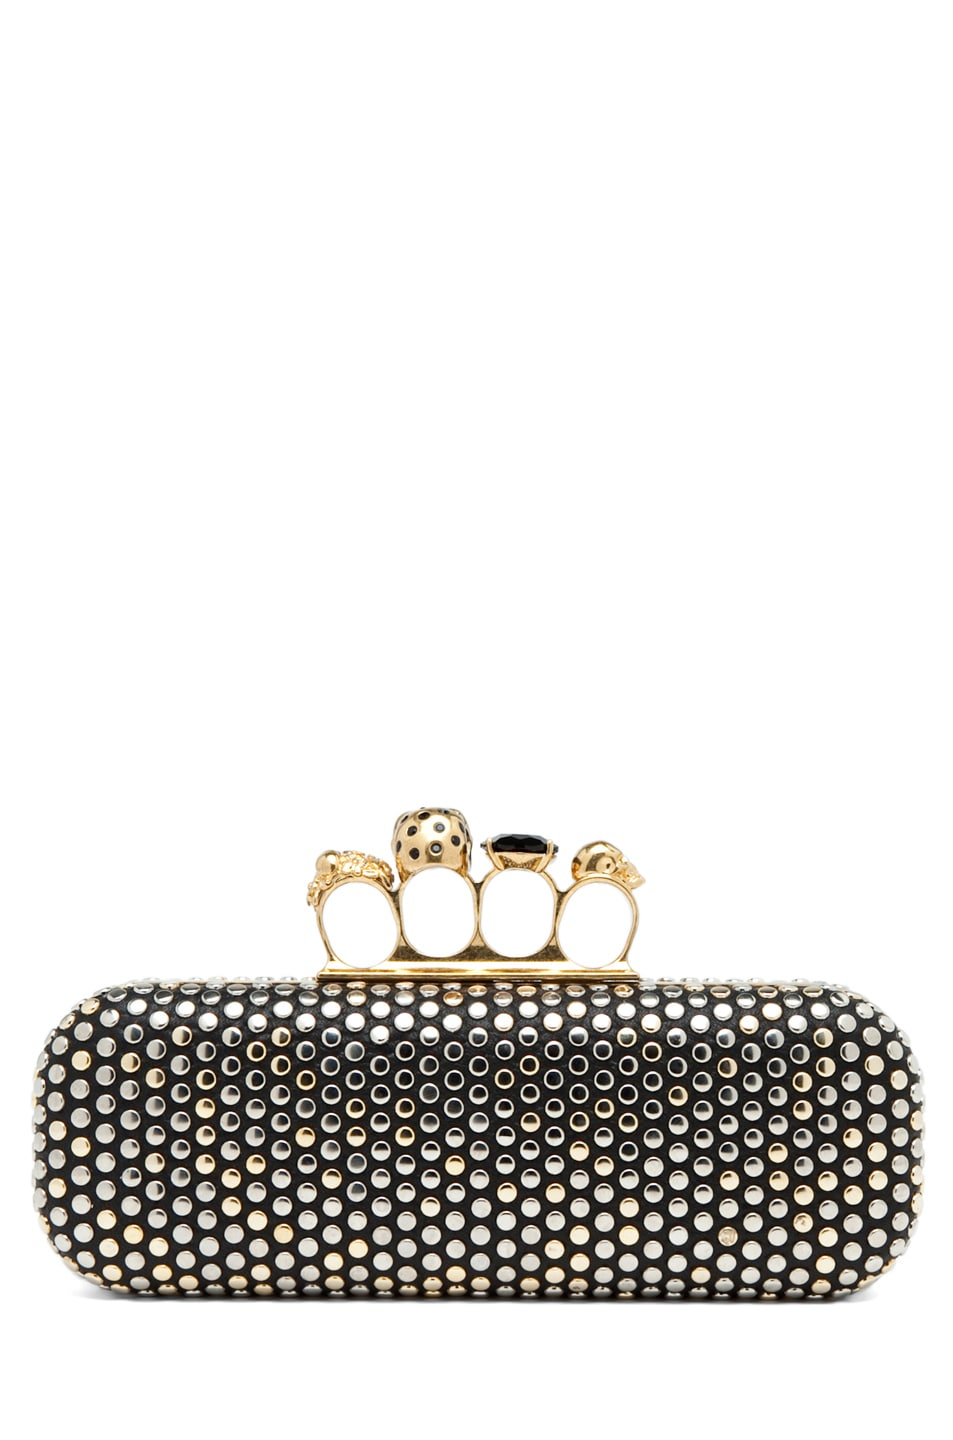 Image 2 of Alexander McQueen Knuckle Box Clutch in Black